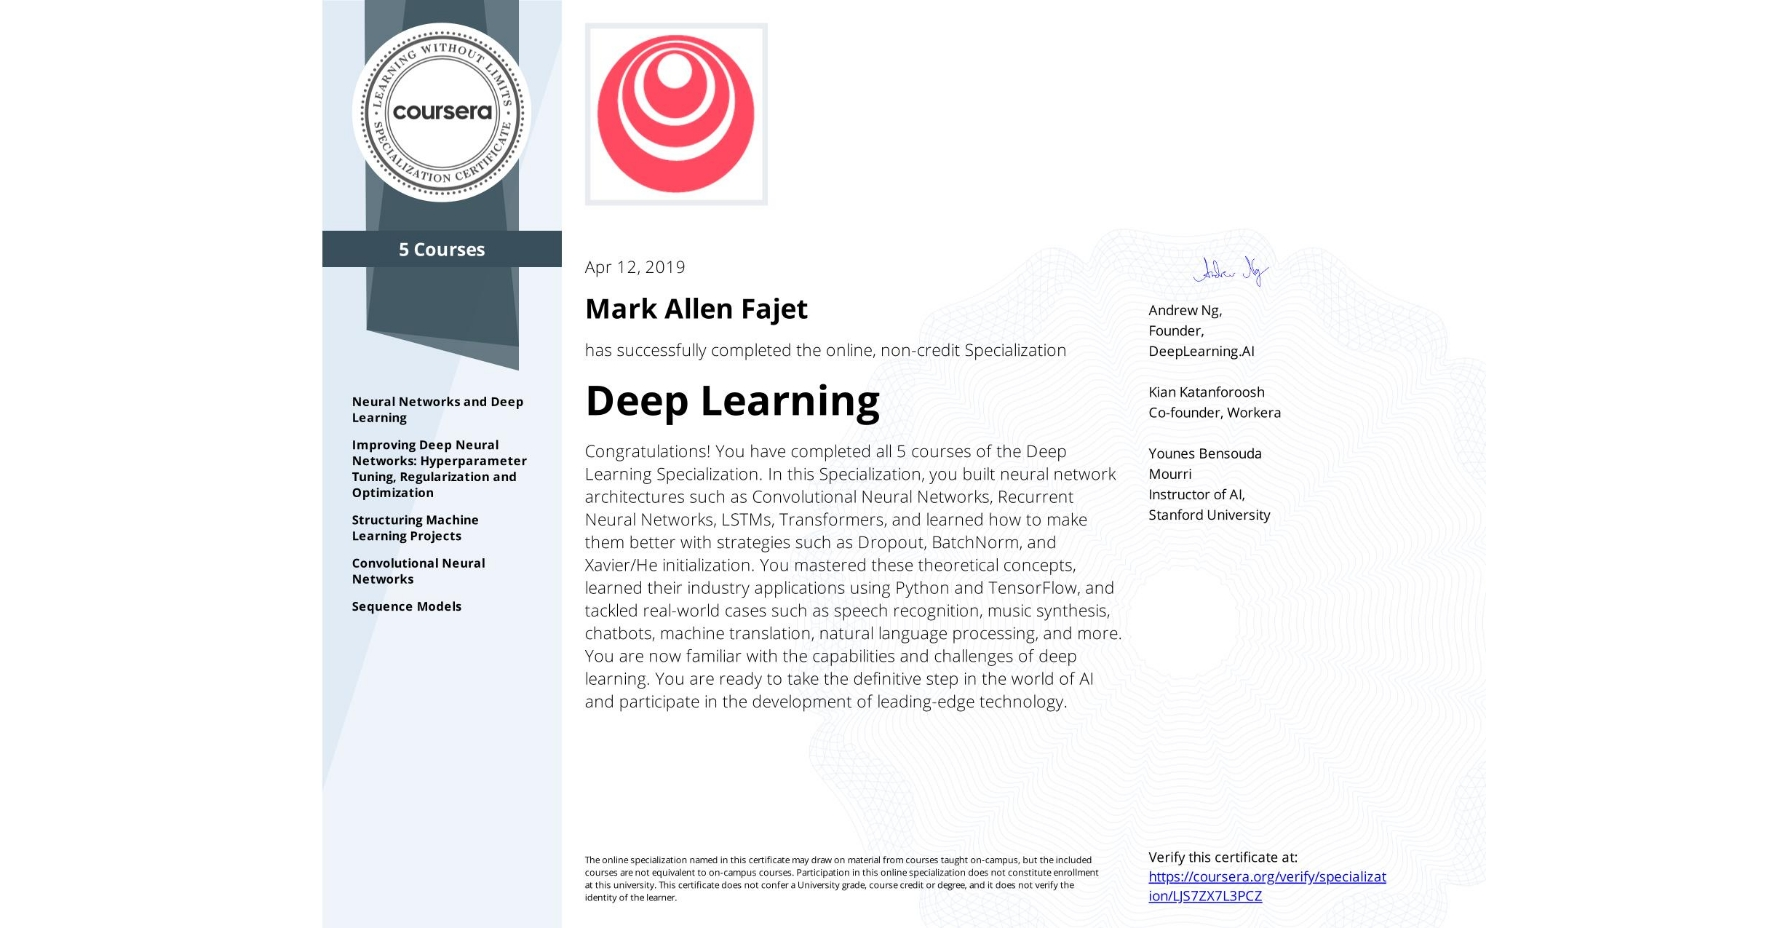 View certificate for Mark Allen Fajet, Deep Learning, offered through Coursera. Congratulations! You have completed all five courses of the Deep Learning Specialization.  In this Specialization, you built neural network architectures such as Convolutional Neural Networks, Recurrent Neural Networks, LSTMs, Transformers and learned how to make them better with strategies such as Dropout, BatchNorm, Xavier/He initialization, and more. You mastered these theoretical concepts and their application using Python and TensorFlow and also tackled real-world case studies such as autonomous driving, sign language reading, music generation, computer vision, speech recognition, and natural language processing.   You're now familiar with the capabilities, challenges, and consequences of deep learning and are ready to participate in the development of leading-edge AI technology.